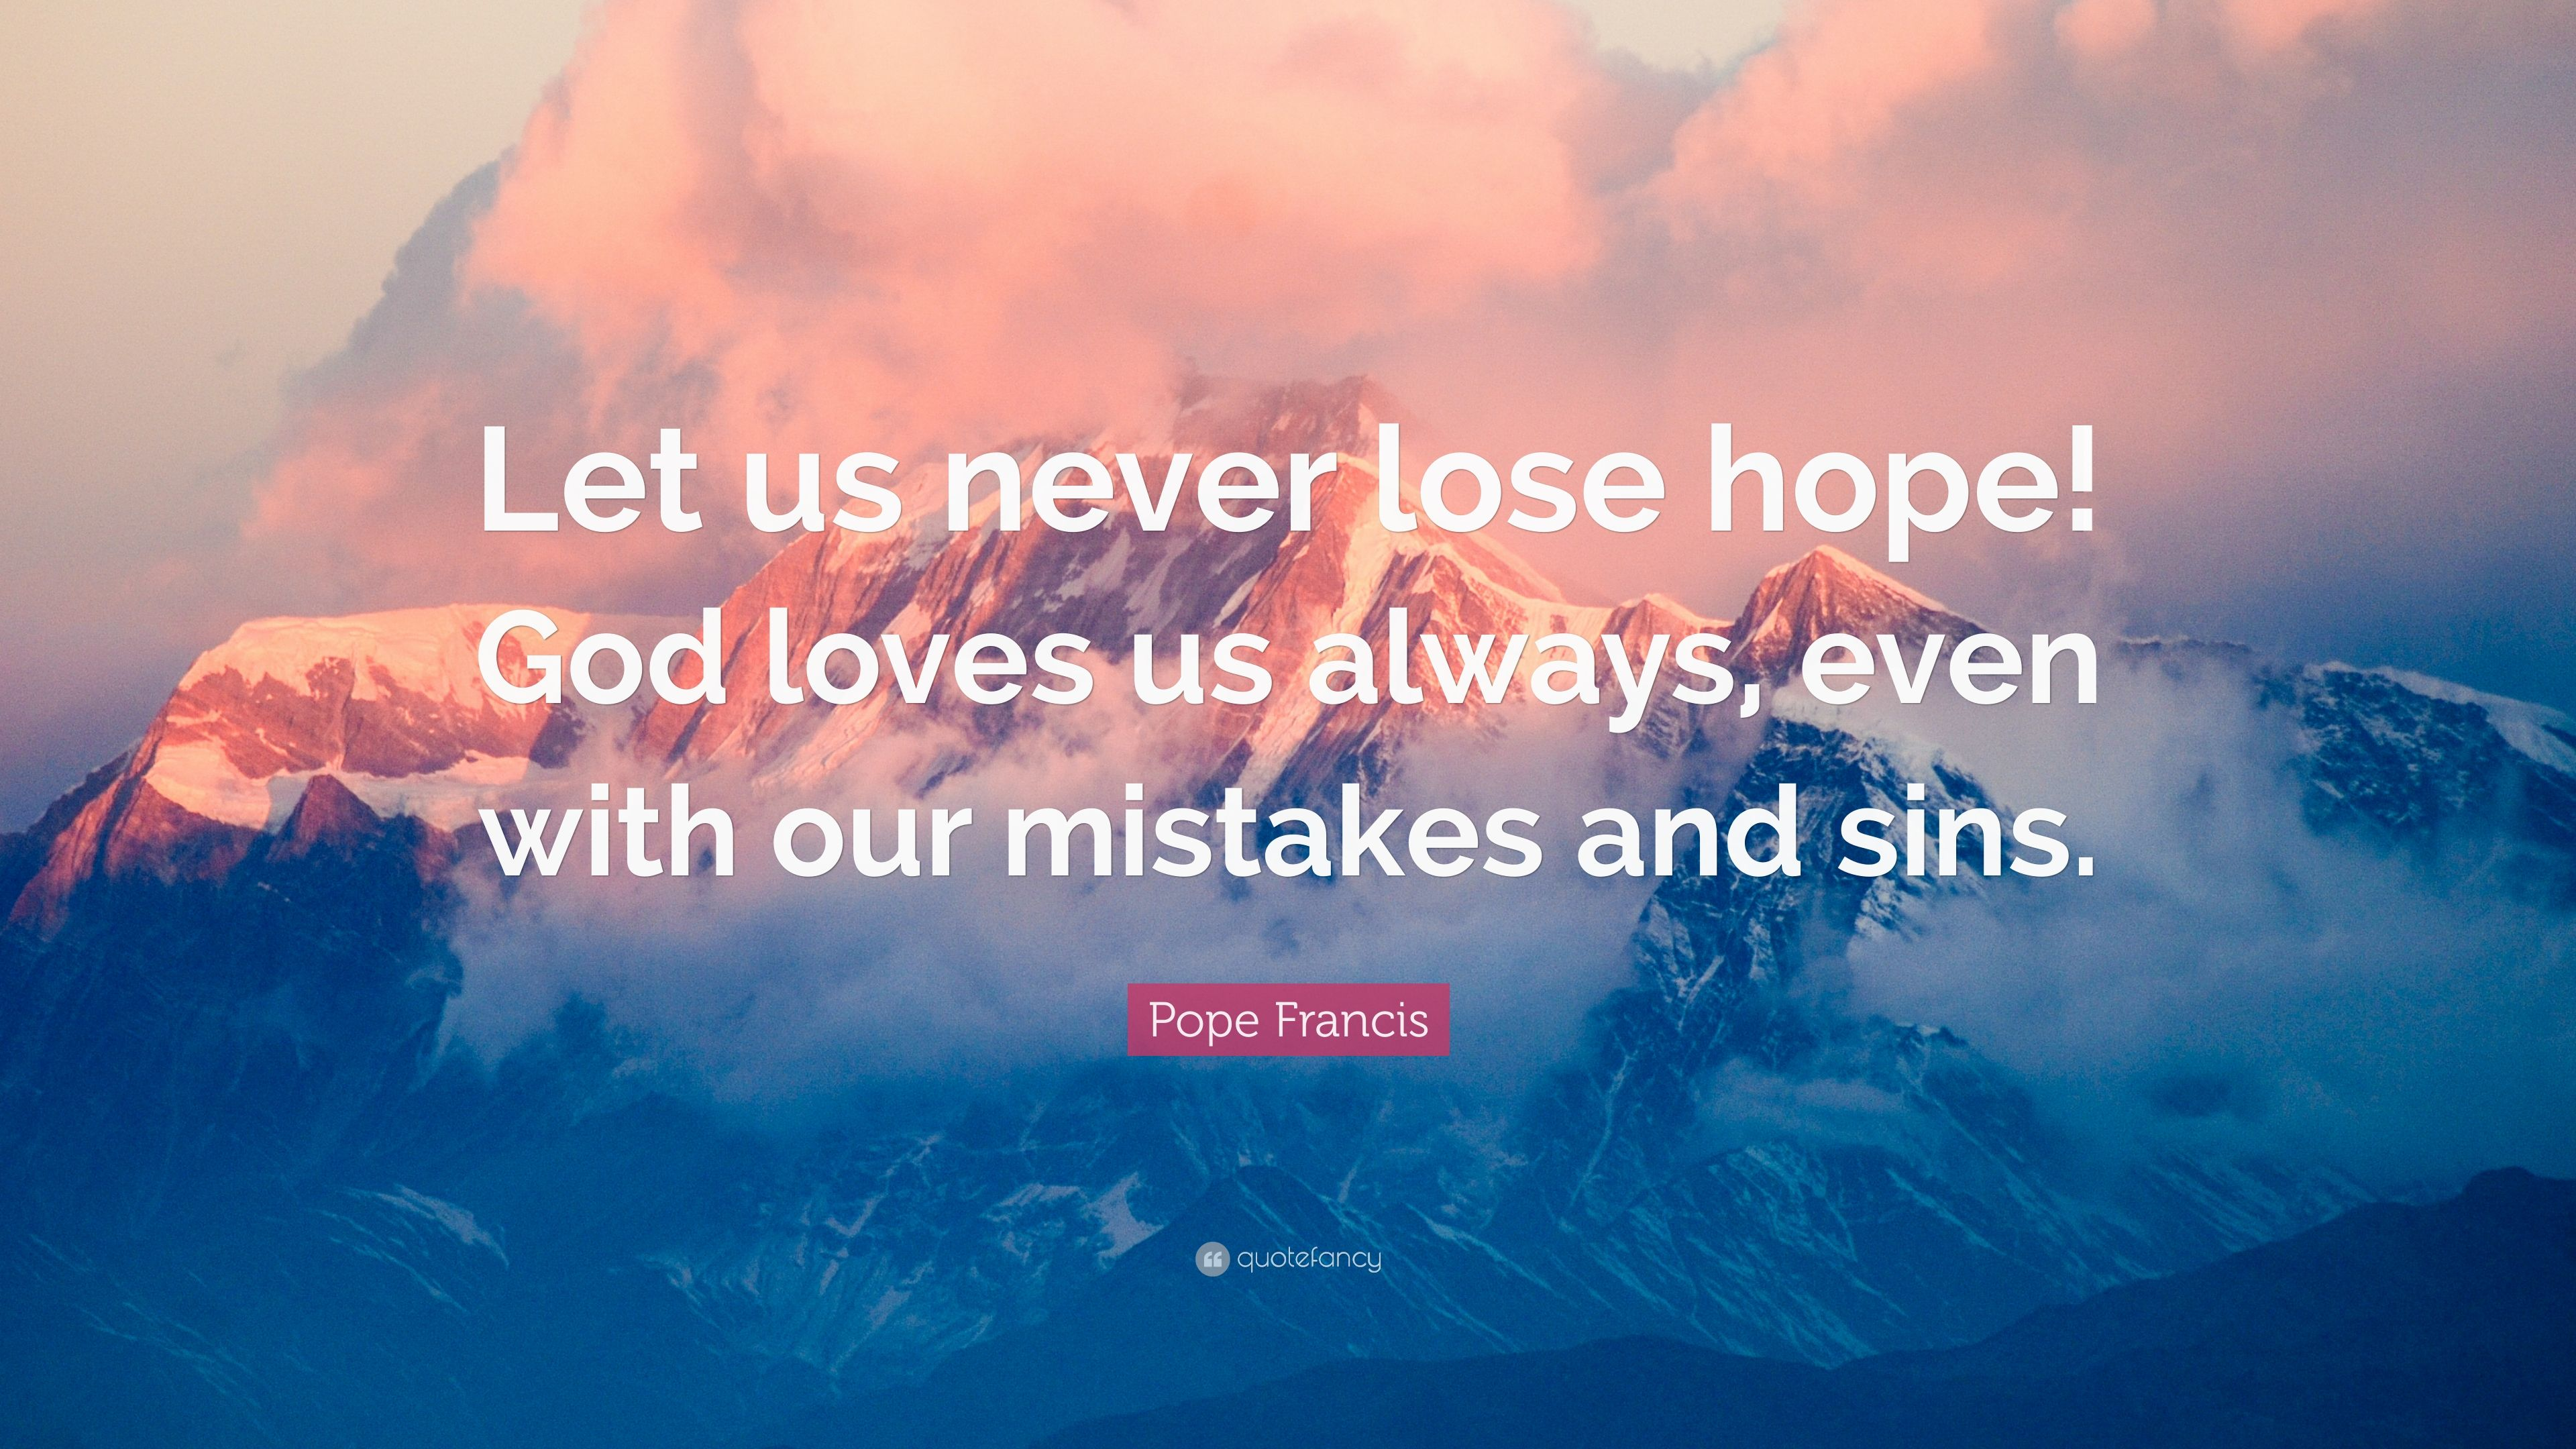 Pope Francis Quote Let Us Never Lose Hope God Loves Us Always Even With Our Mistakes And Sins 7 Wallpapers Quotefancy